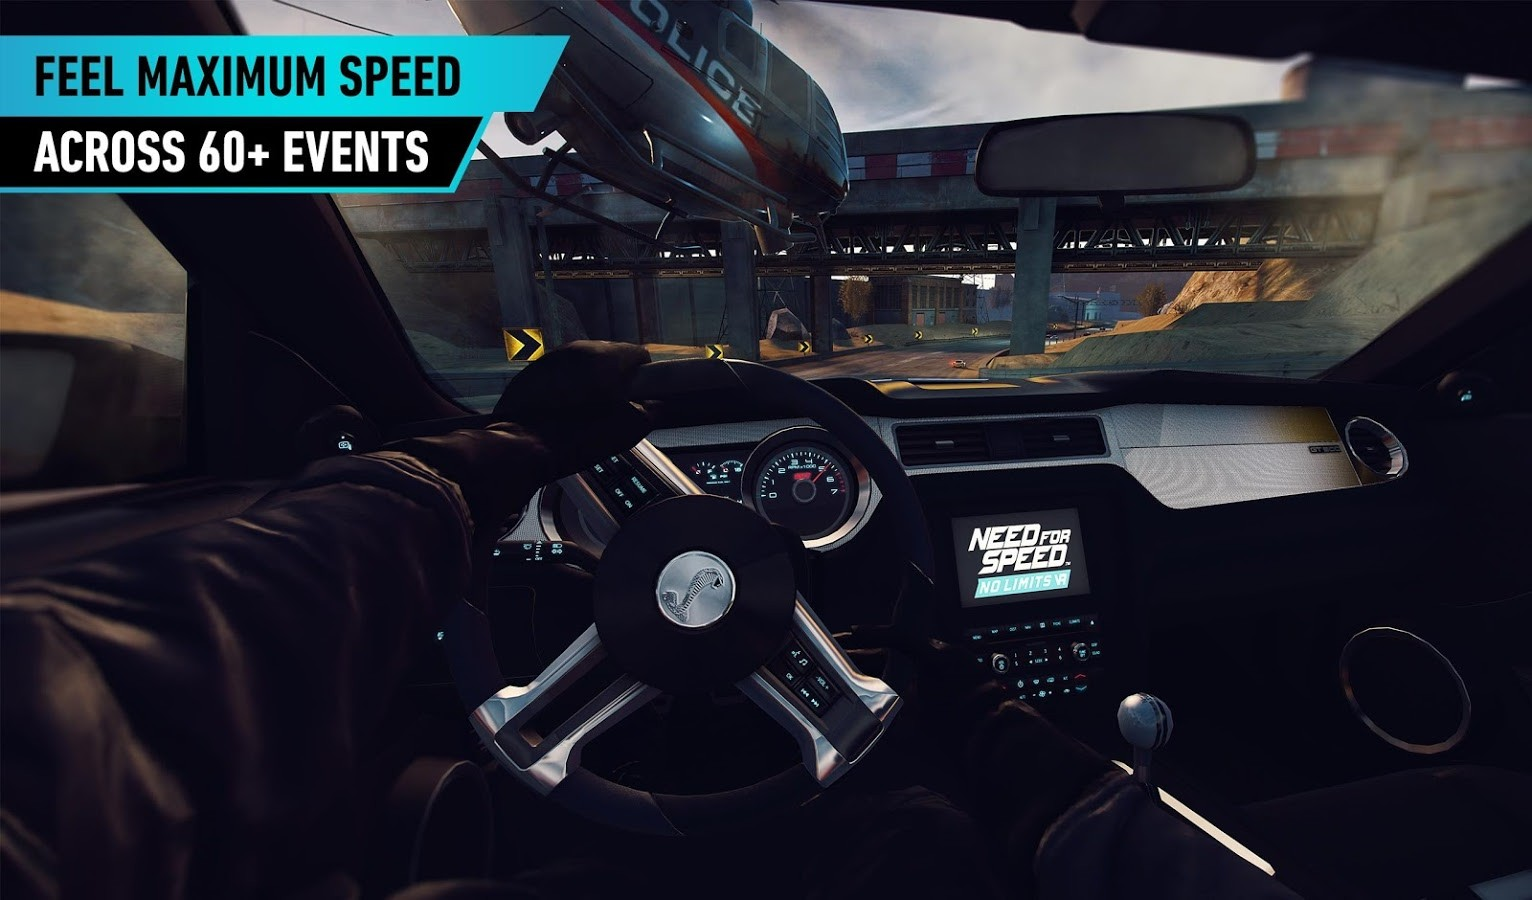 Nfs no limits mod apk offline revdl | Need For Speed Payback